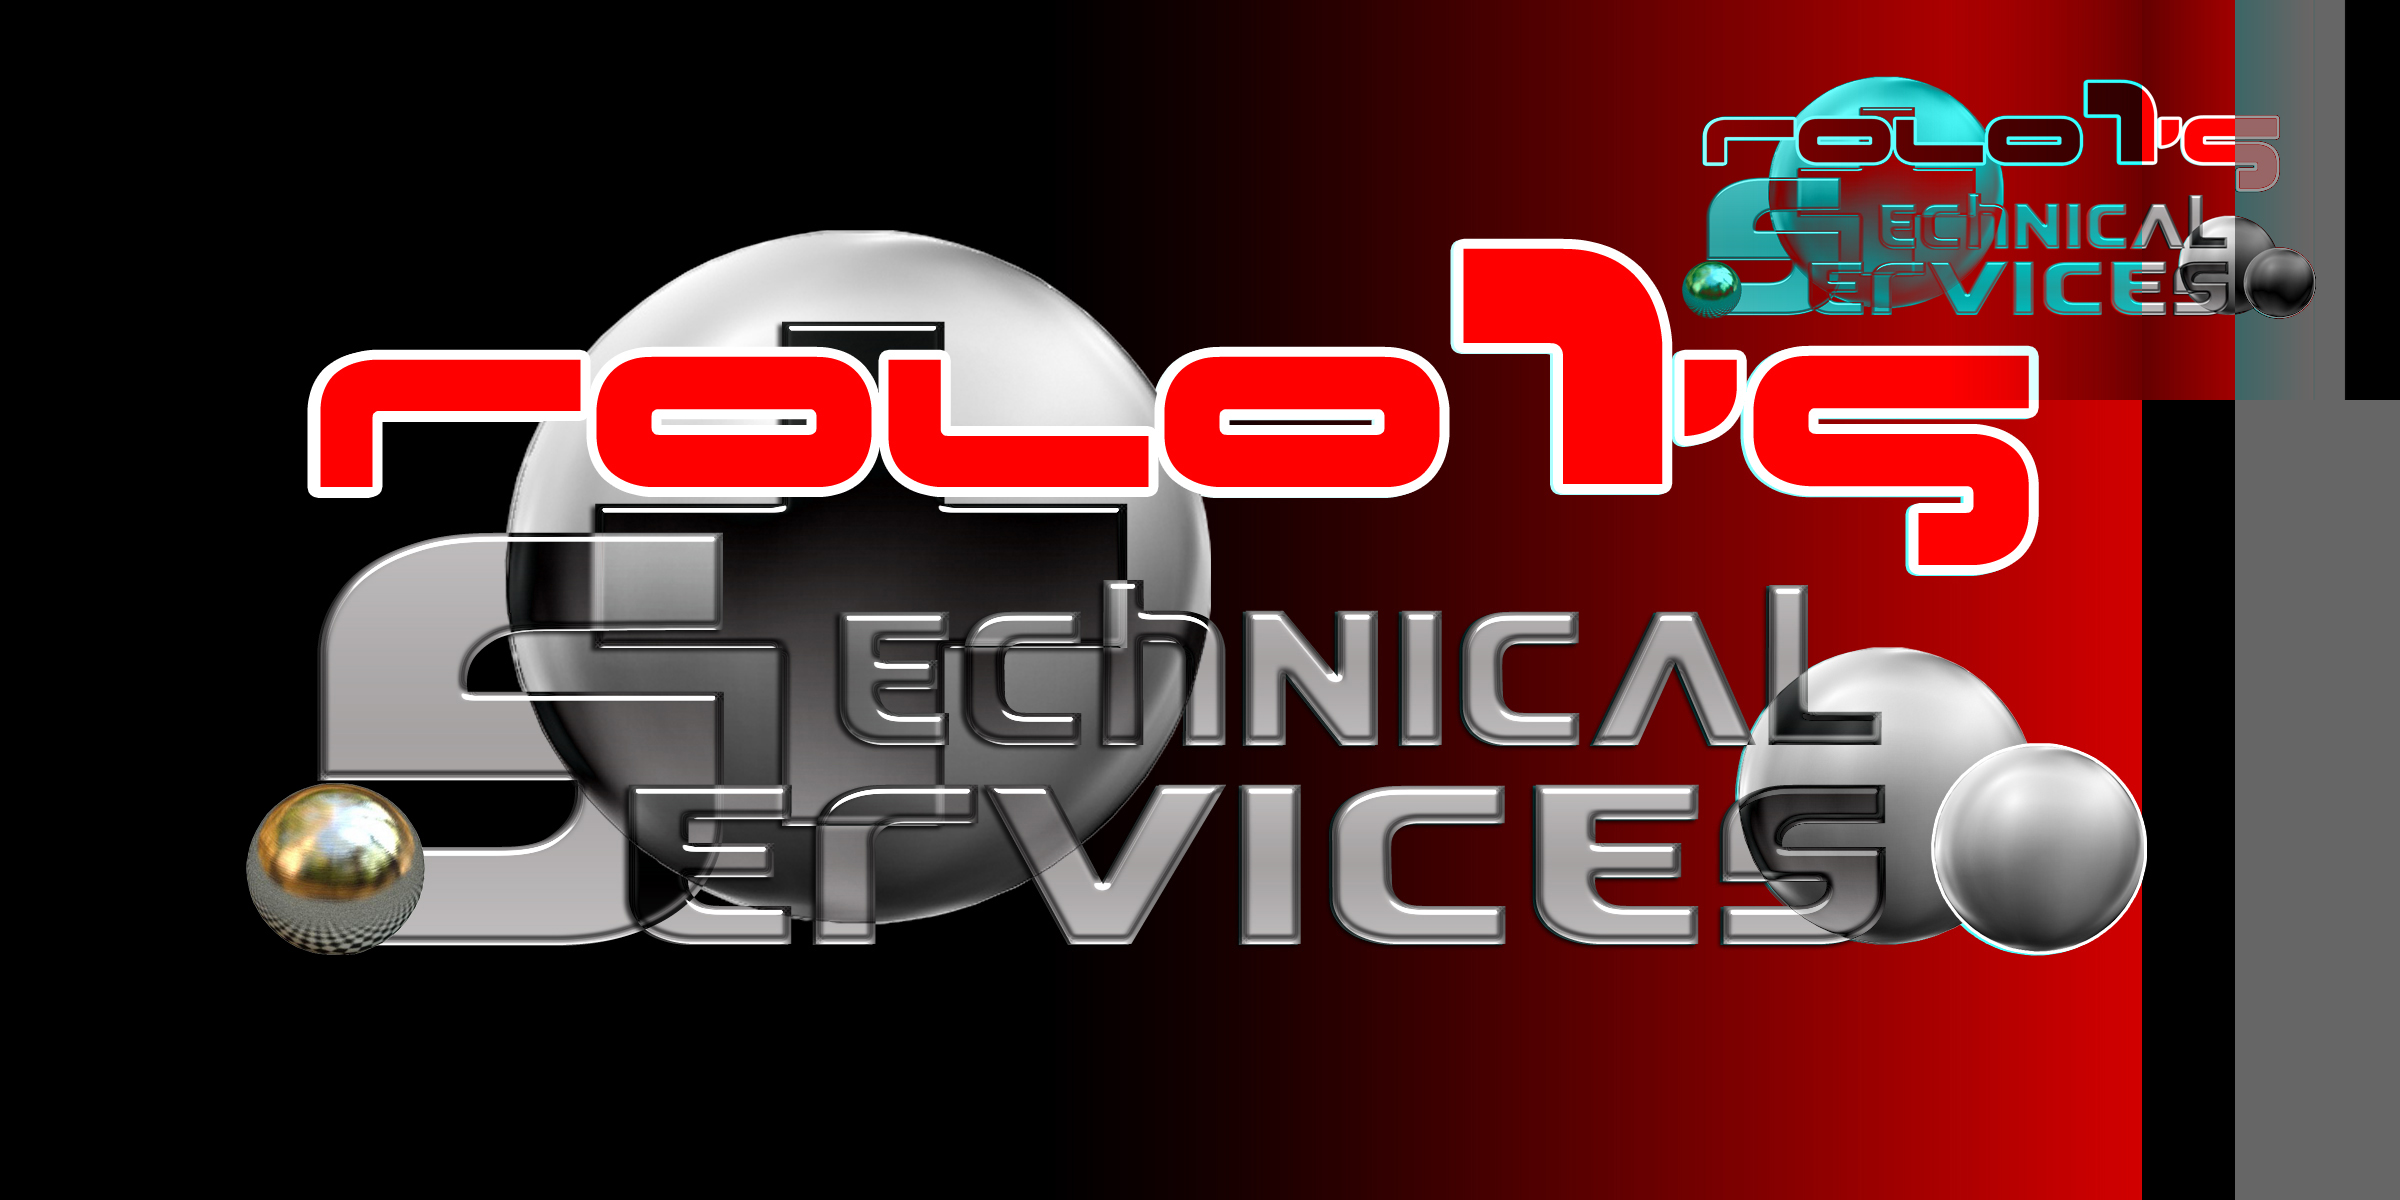 Logo Design by MITUCA ANDREI - Entry No. 21 in the Logo Design Contest Inspiring Logo Design for Rolo1's Technical Services.